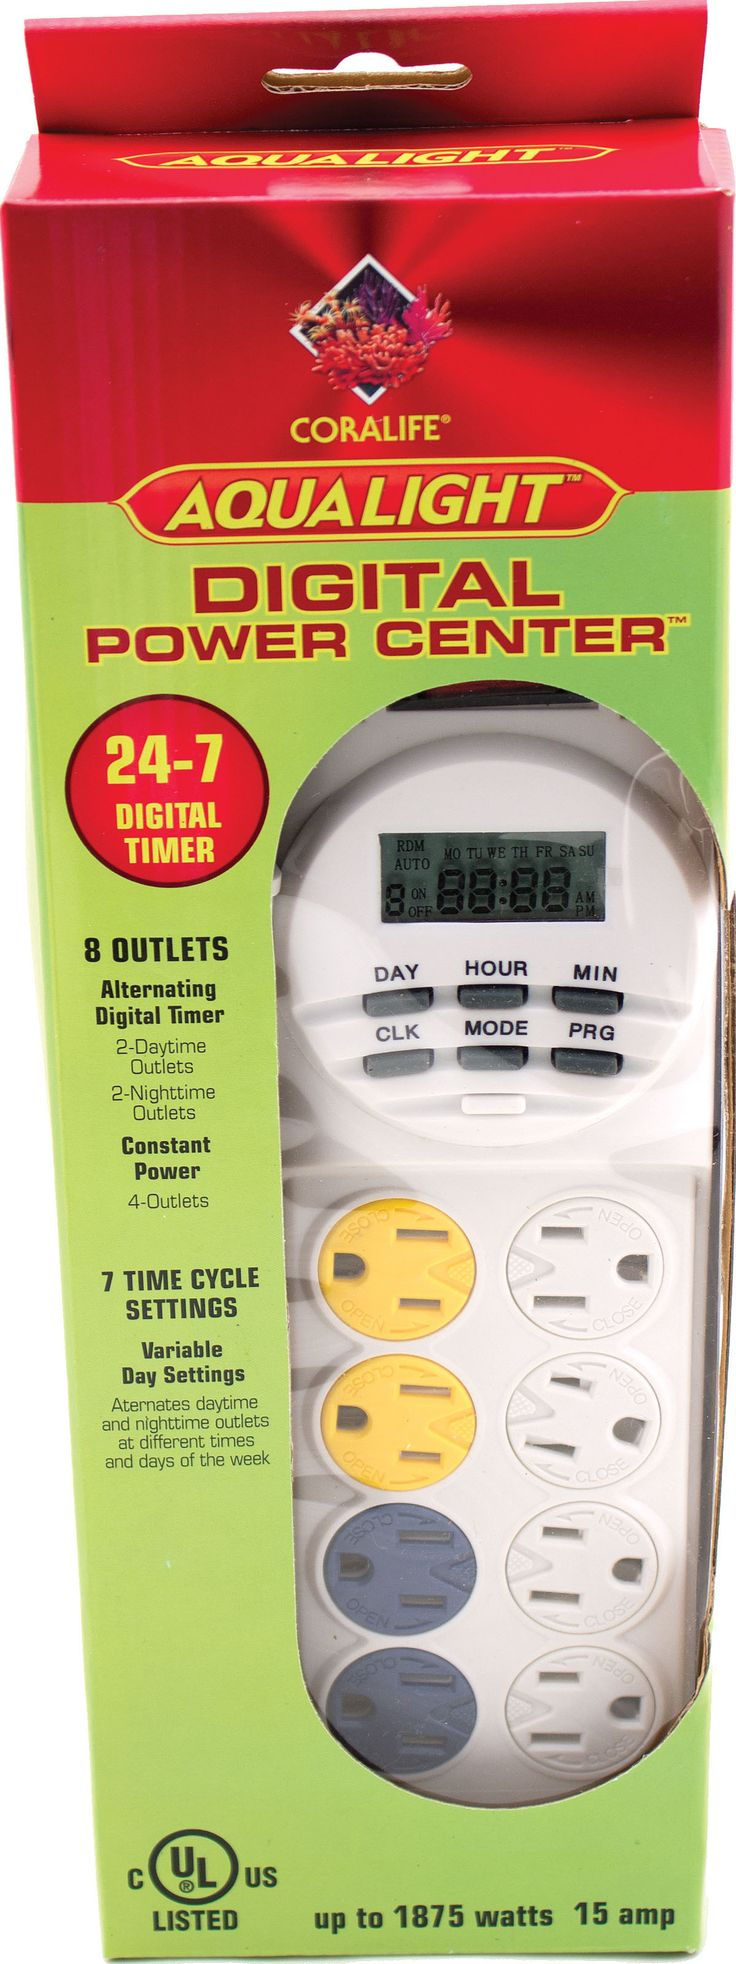 Aqualight Power Center 24-hr Digital Timer